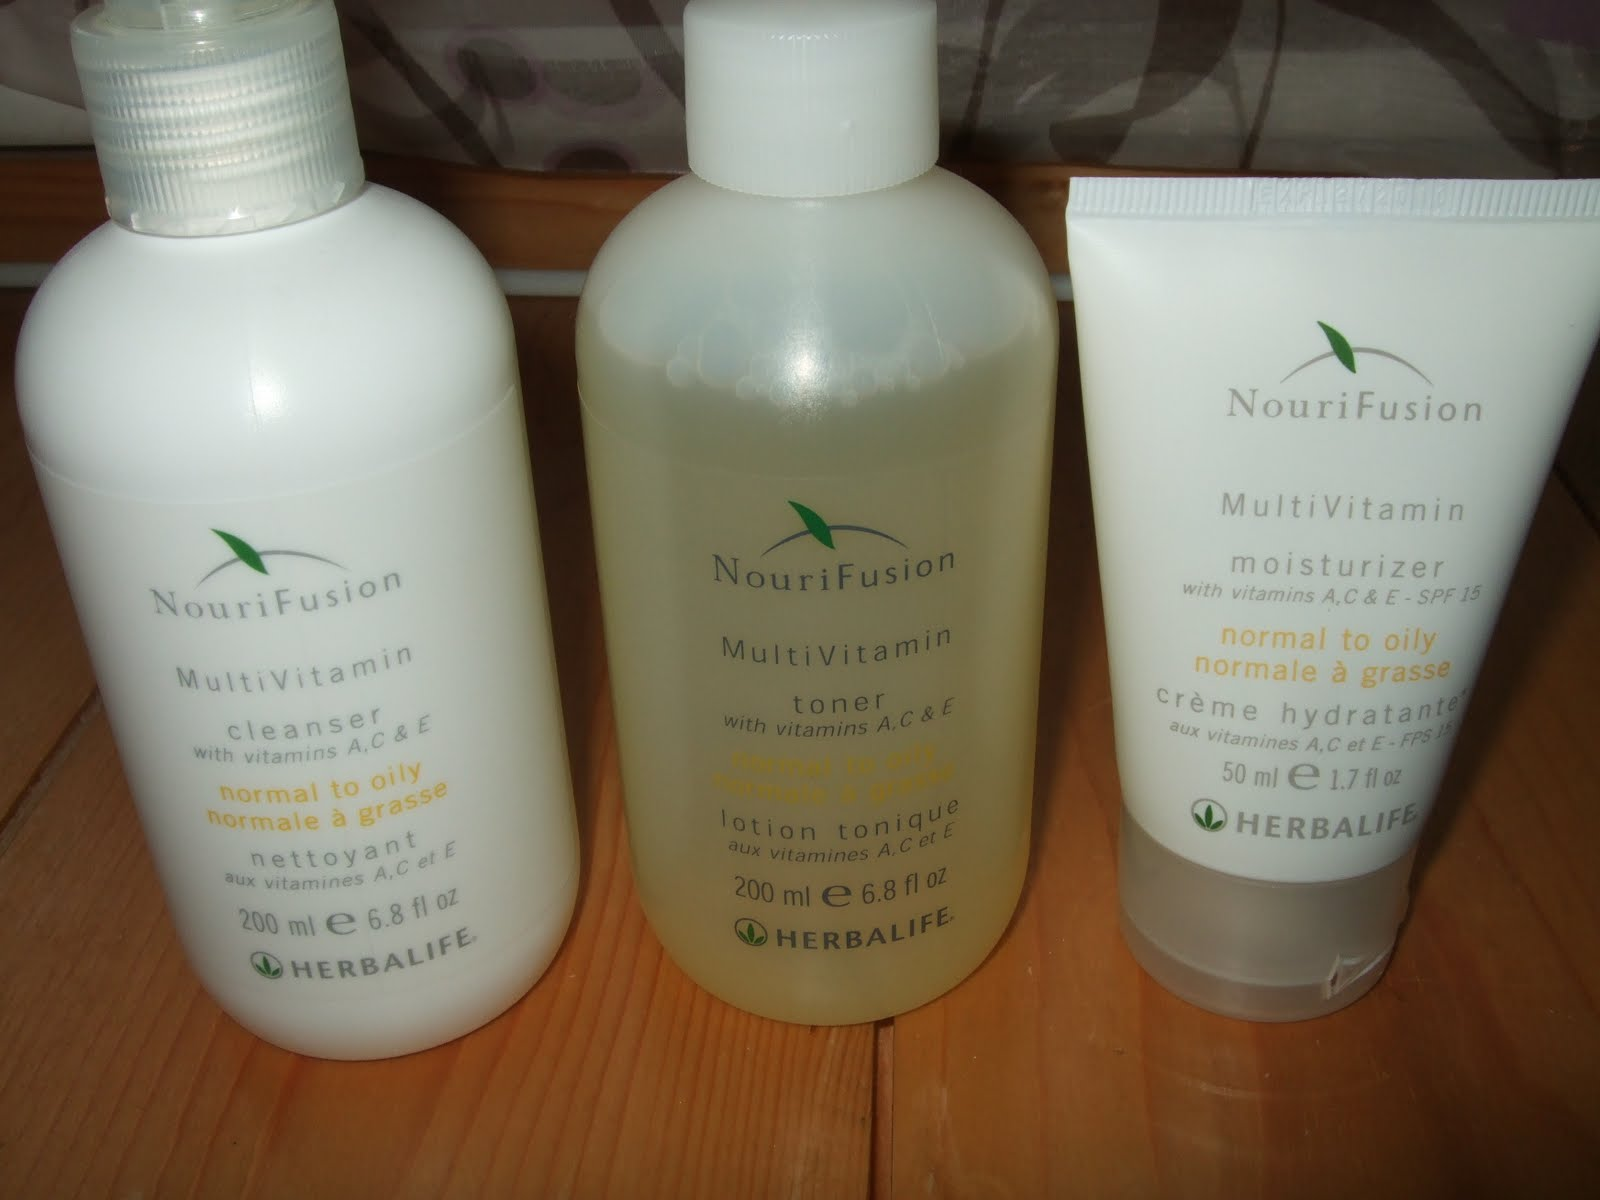 Care herbal life product skin - Care Herbal Life Product Skin 13